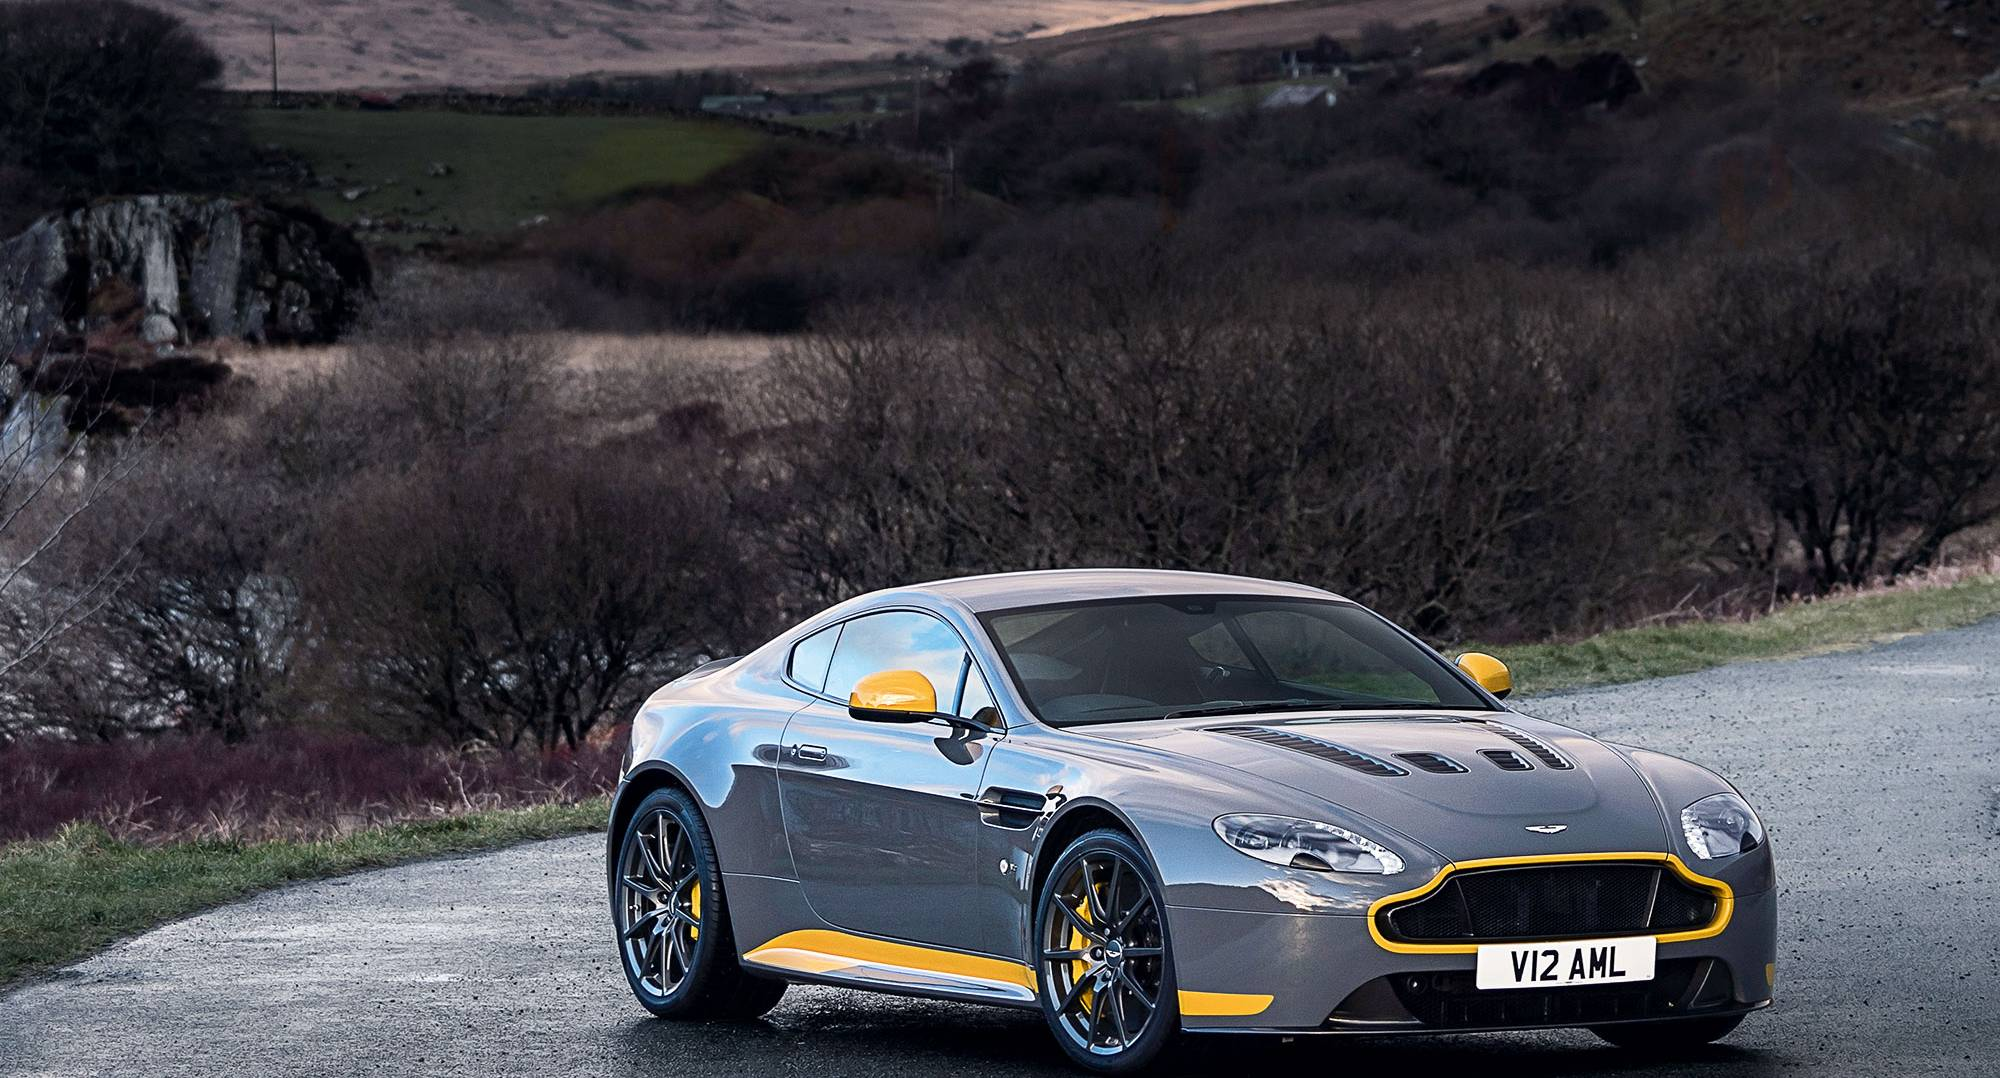 gearbox of delights: driving the aston martin v12 vantage s | the